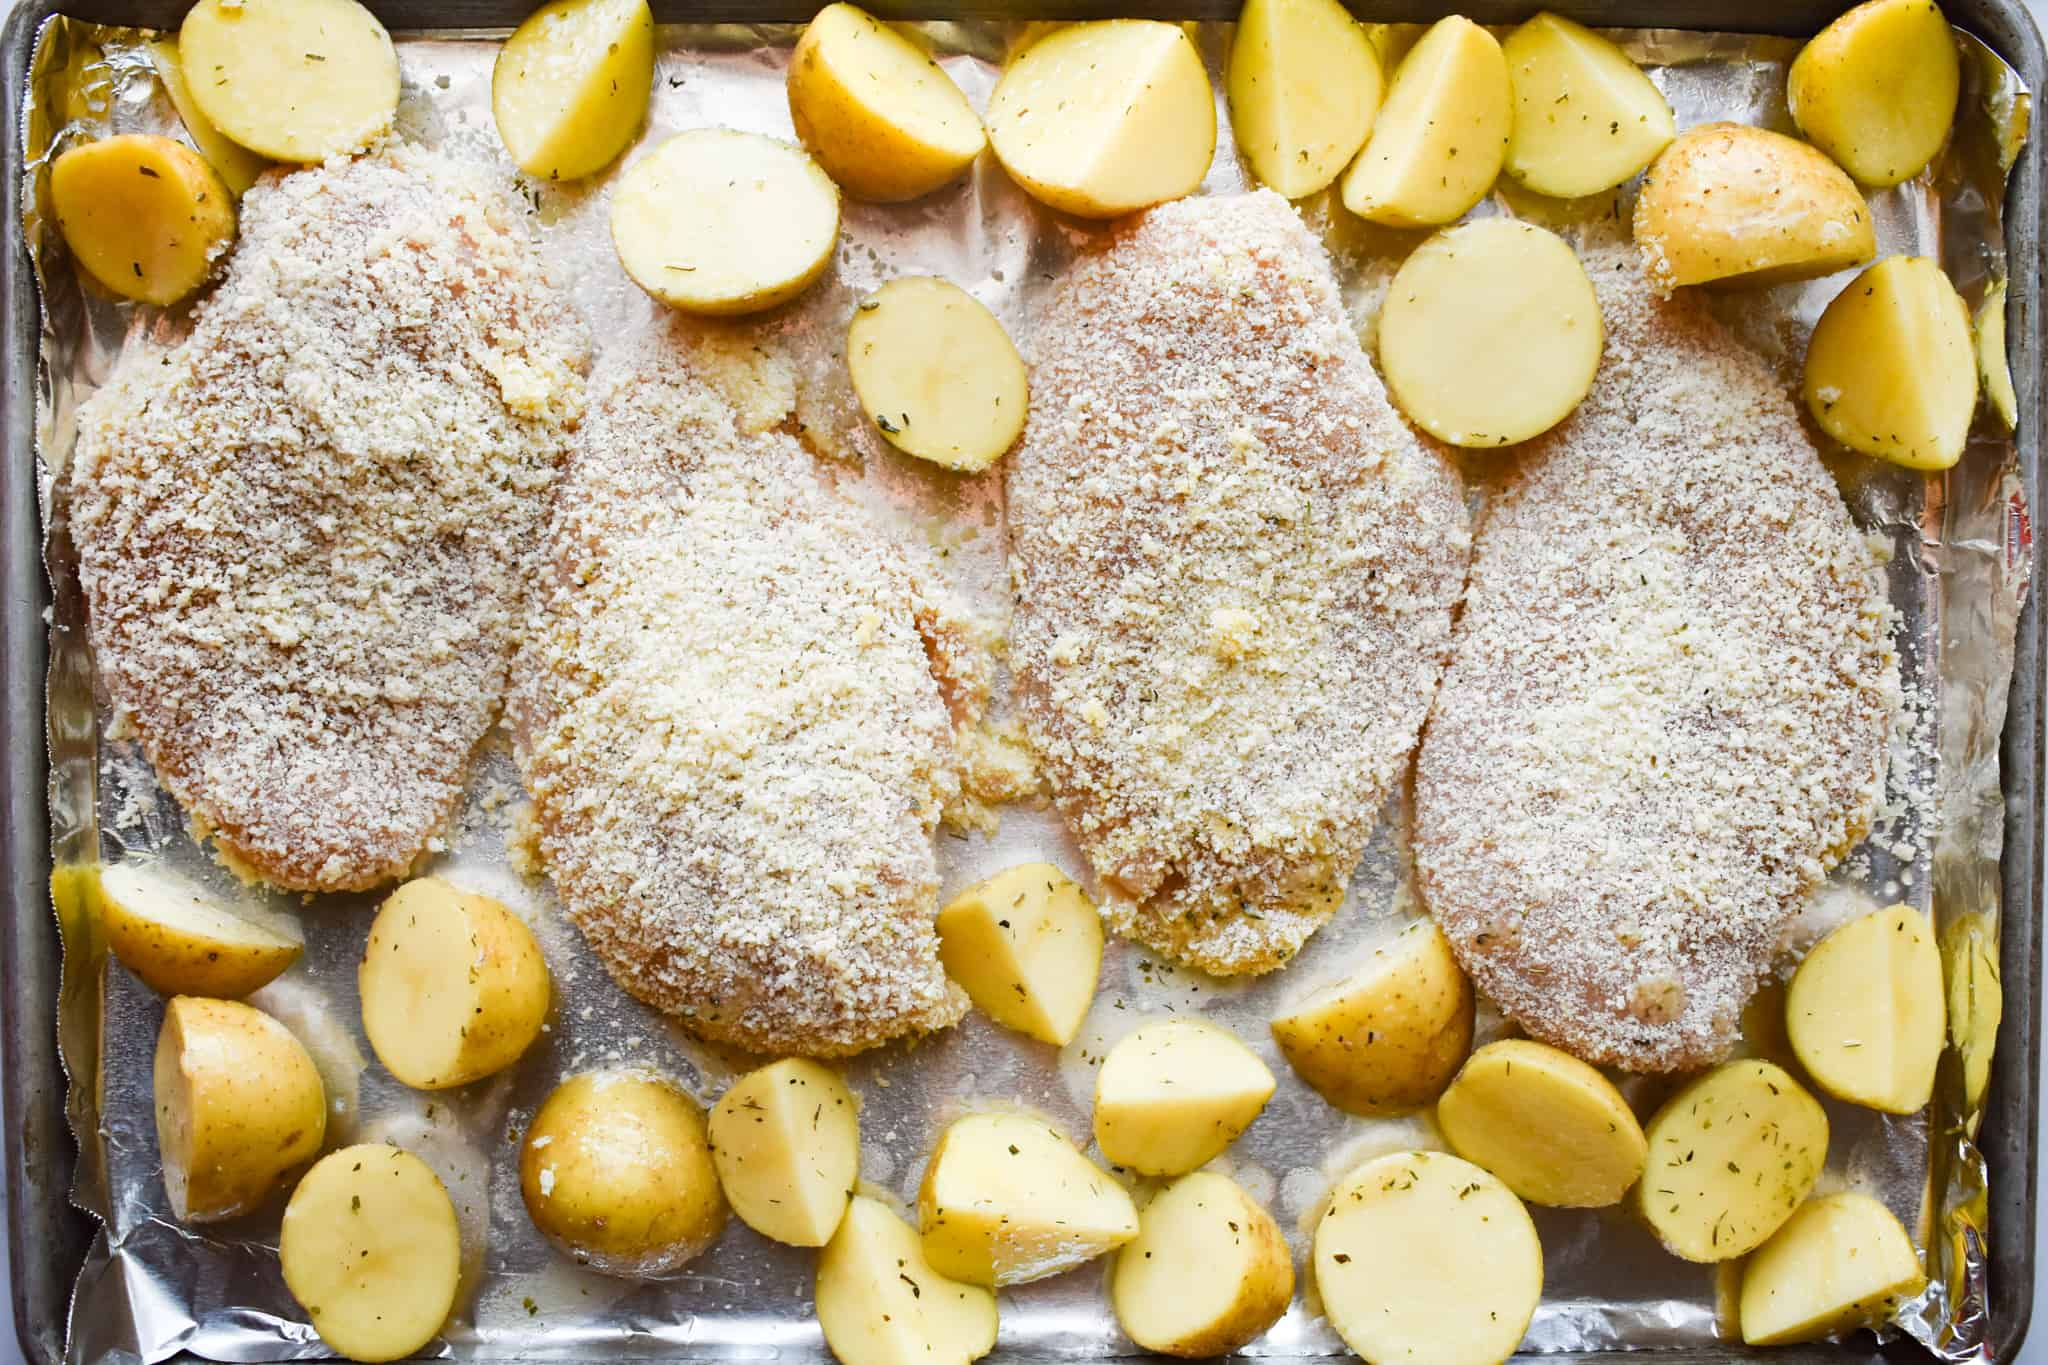 coasted chicken breasts and seasoned sliced potatoes on a large baking sheet.